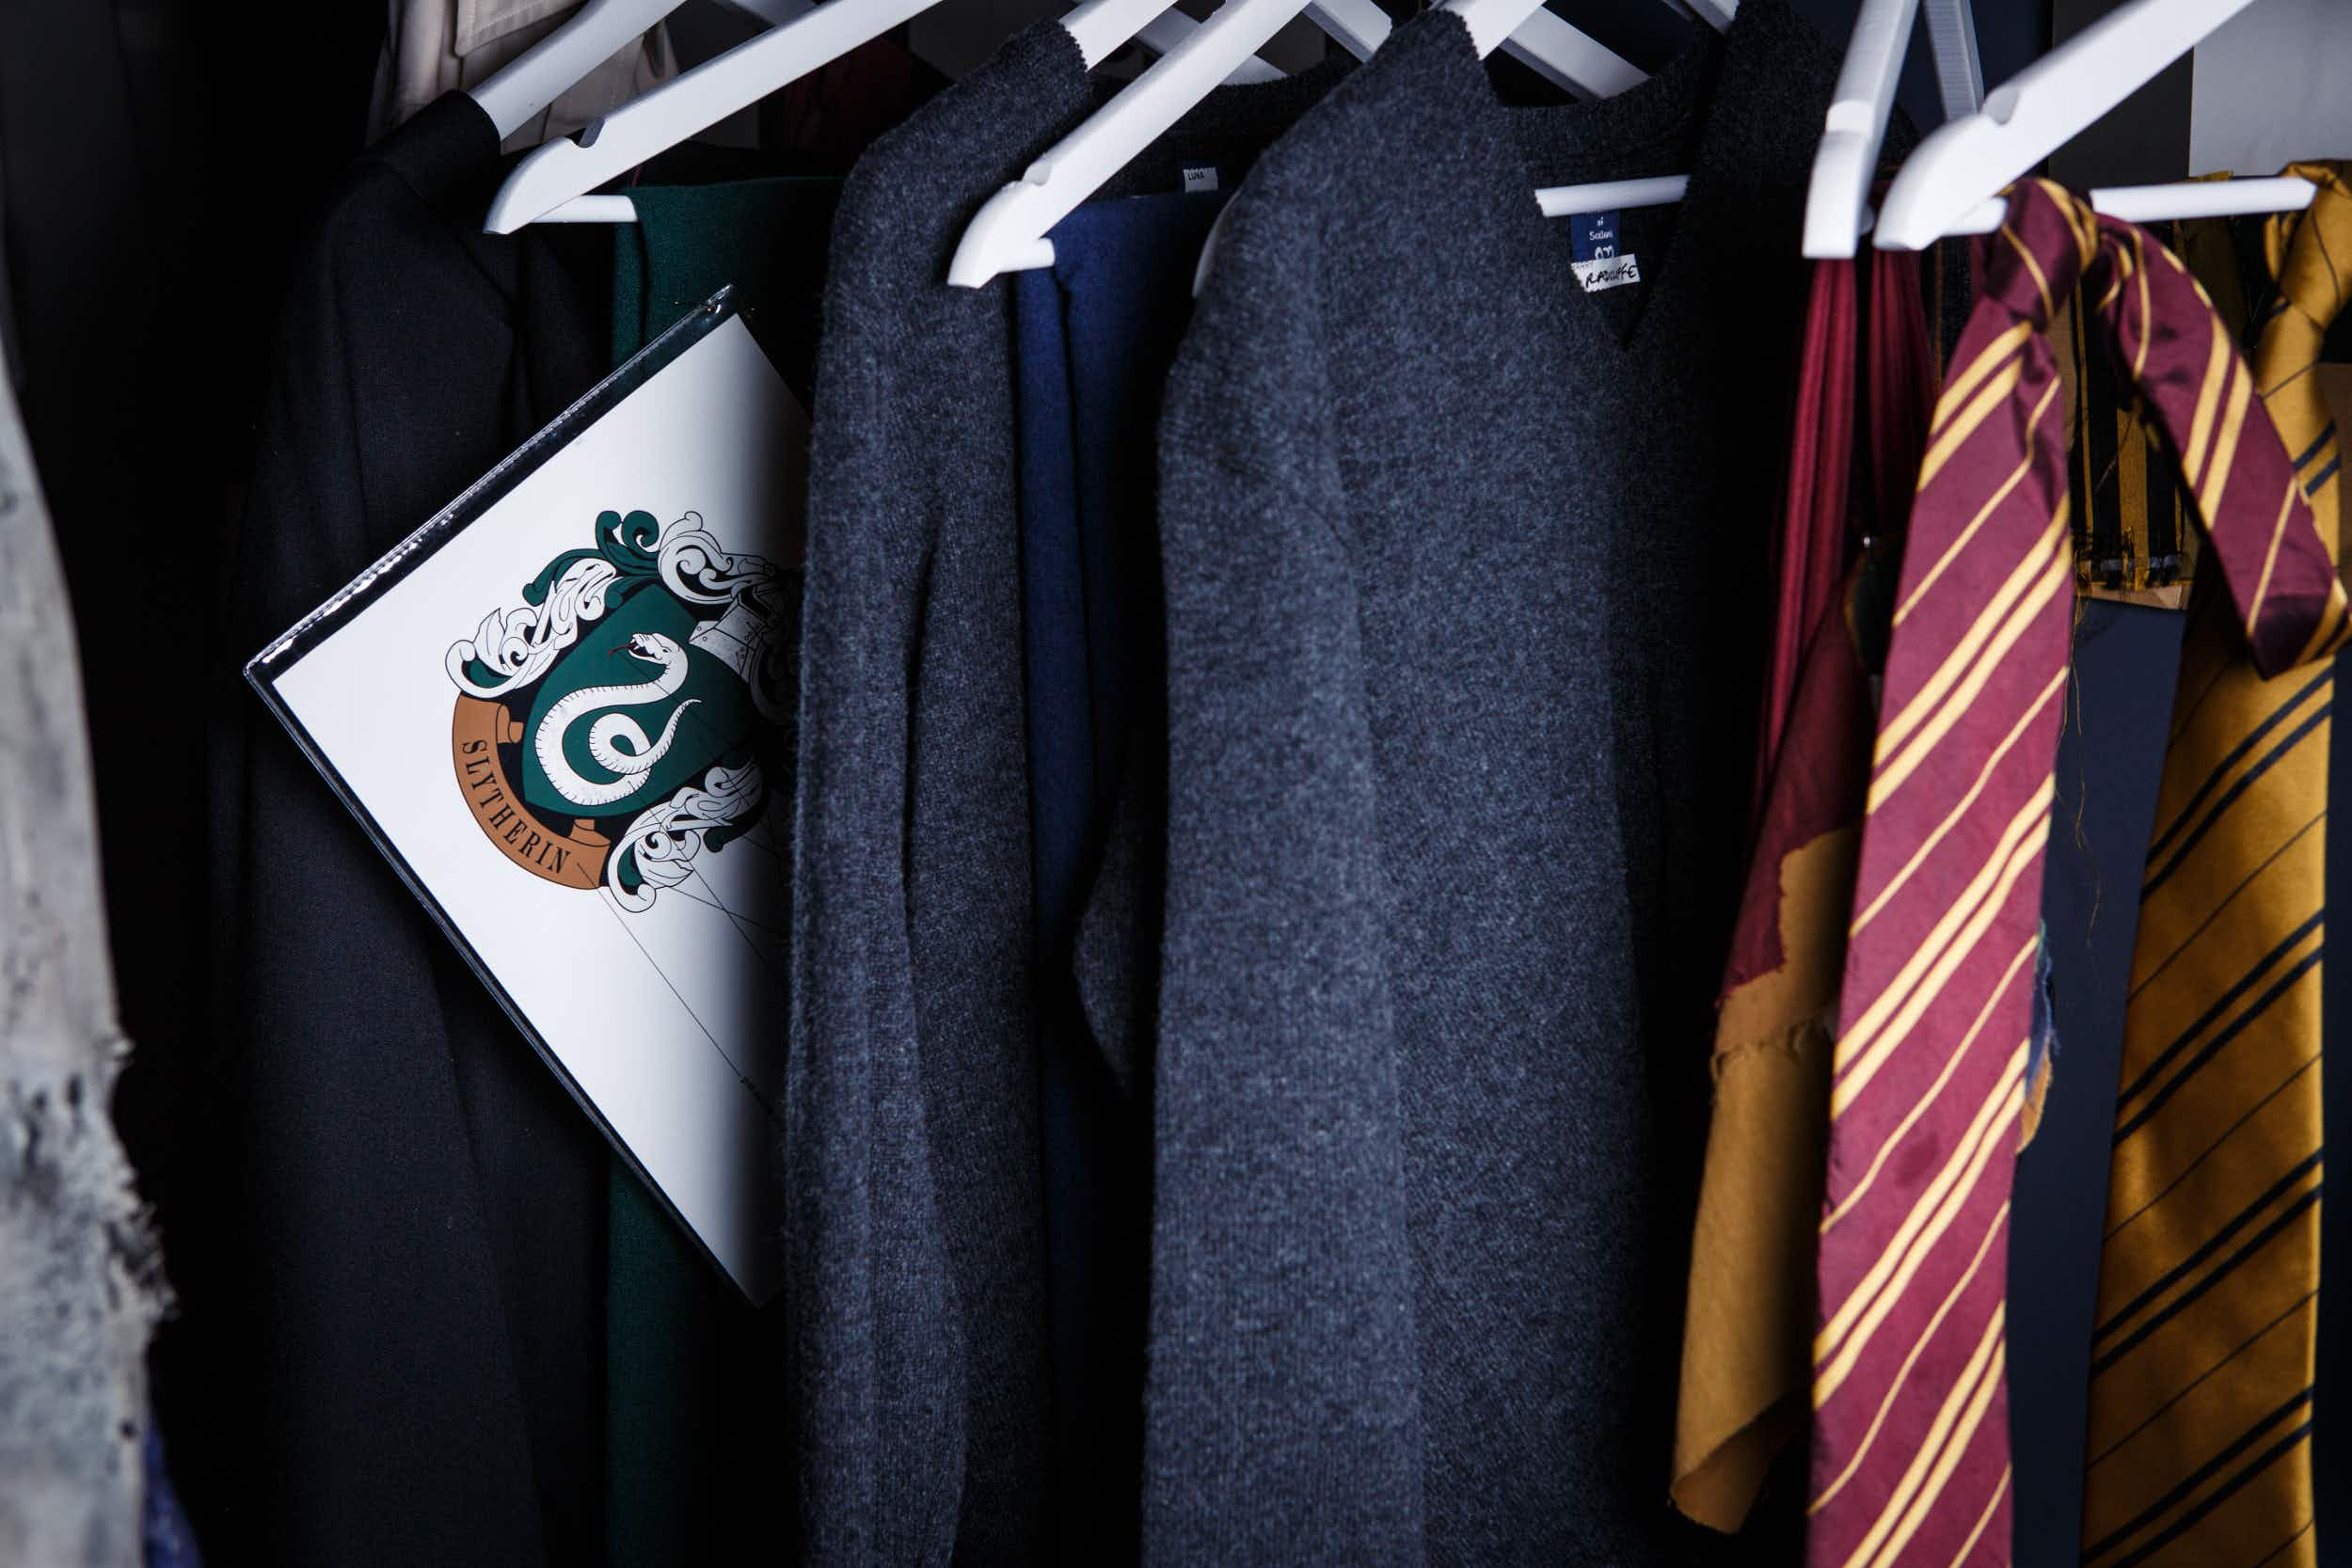 London's Harry Potter tour allows visitors to try on actual costumes from the films